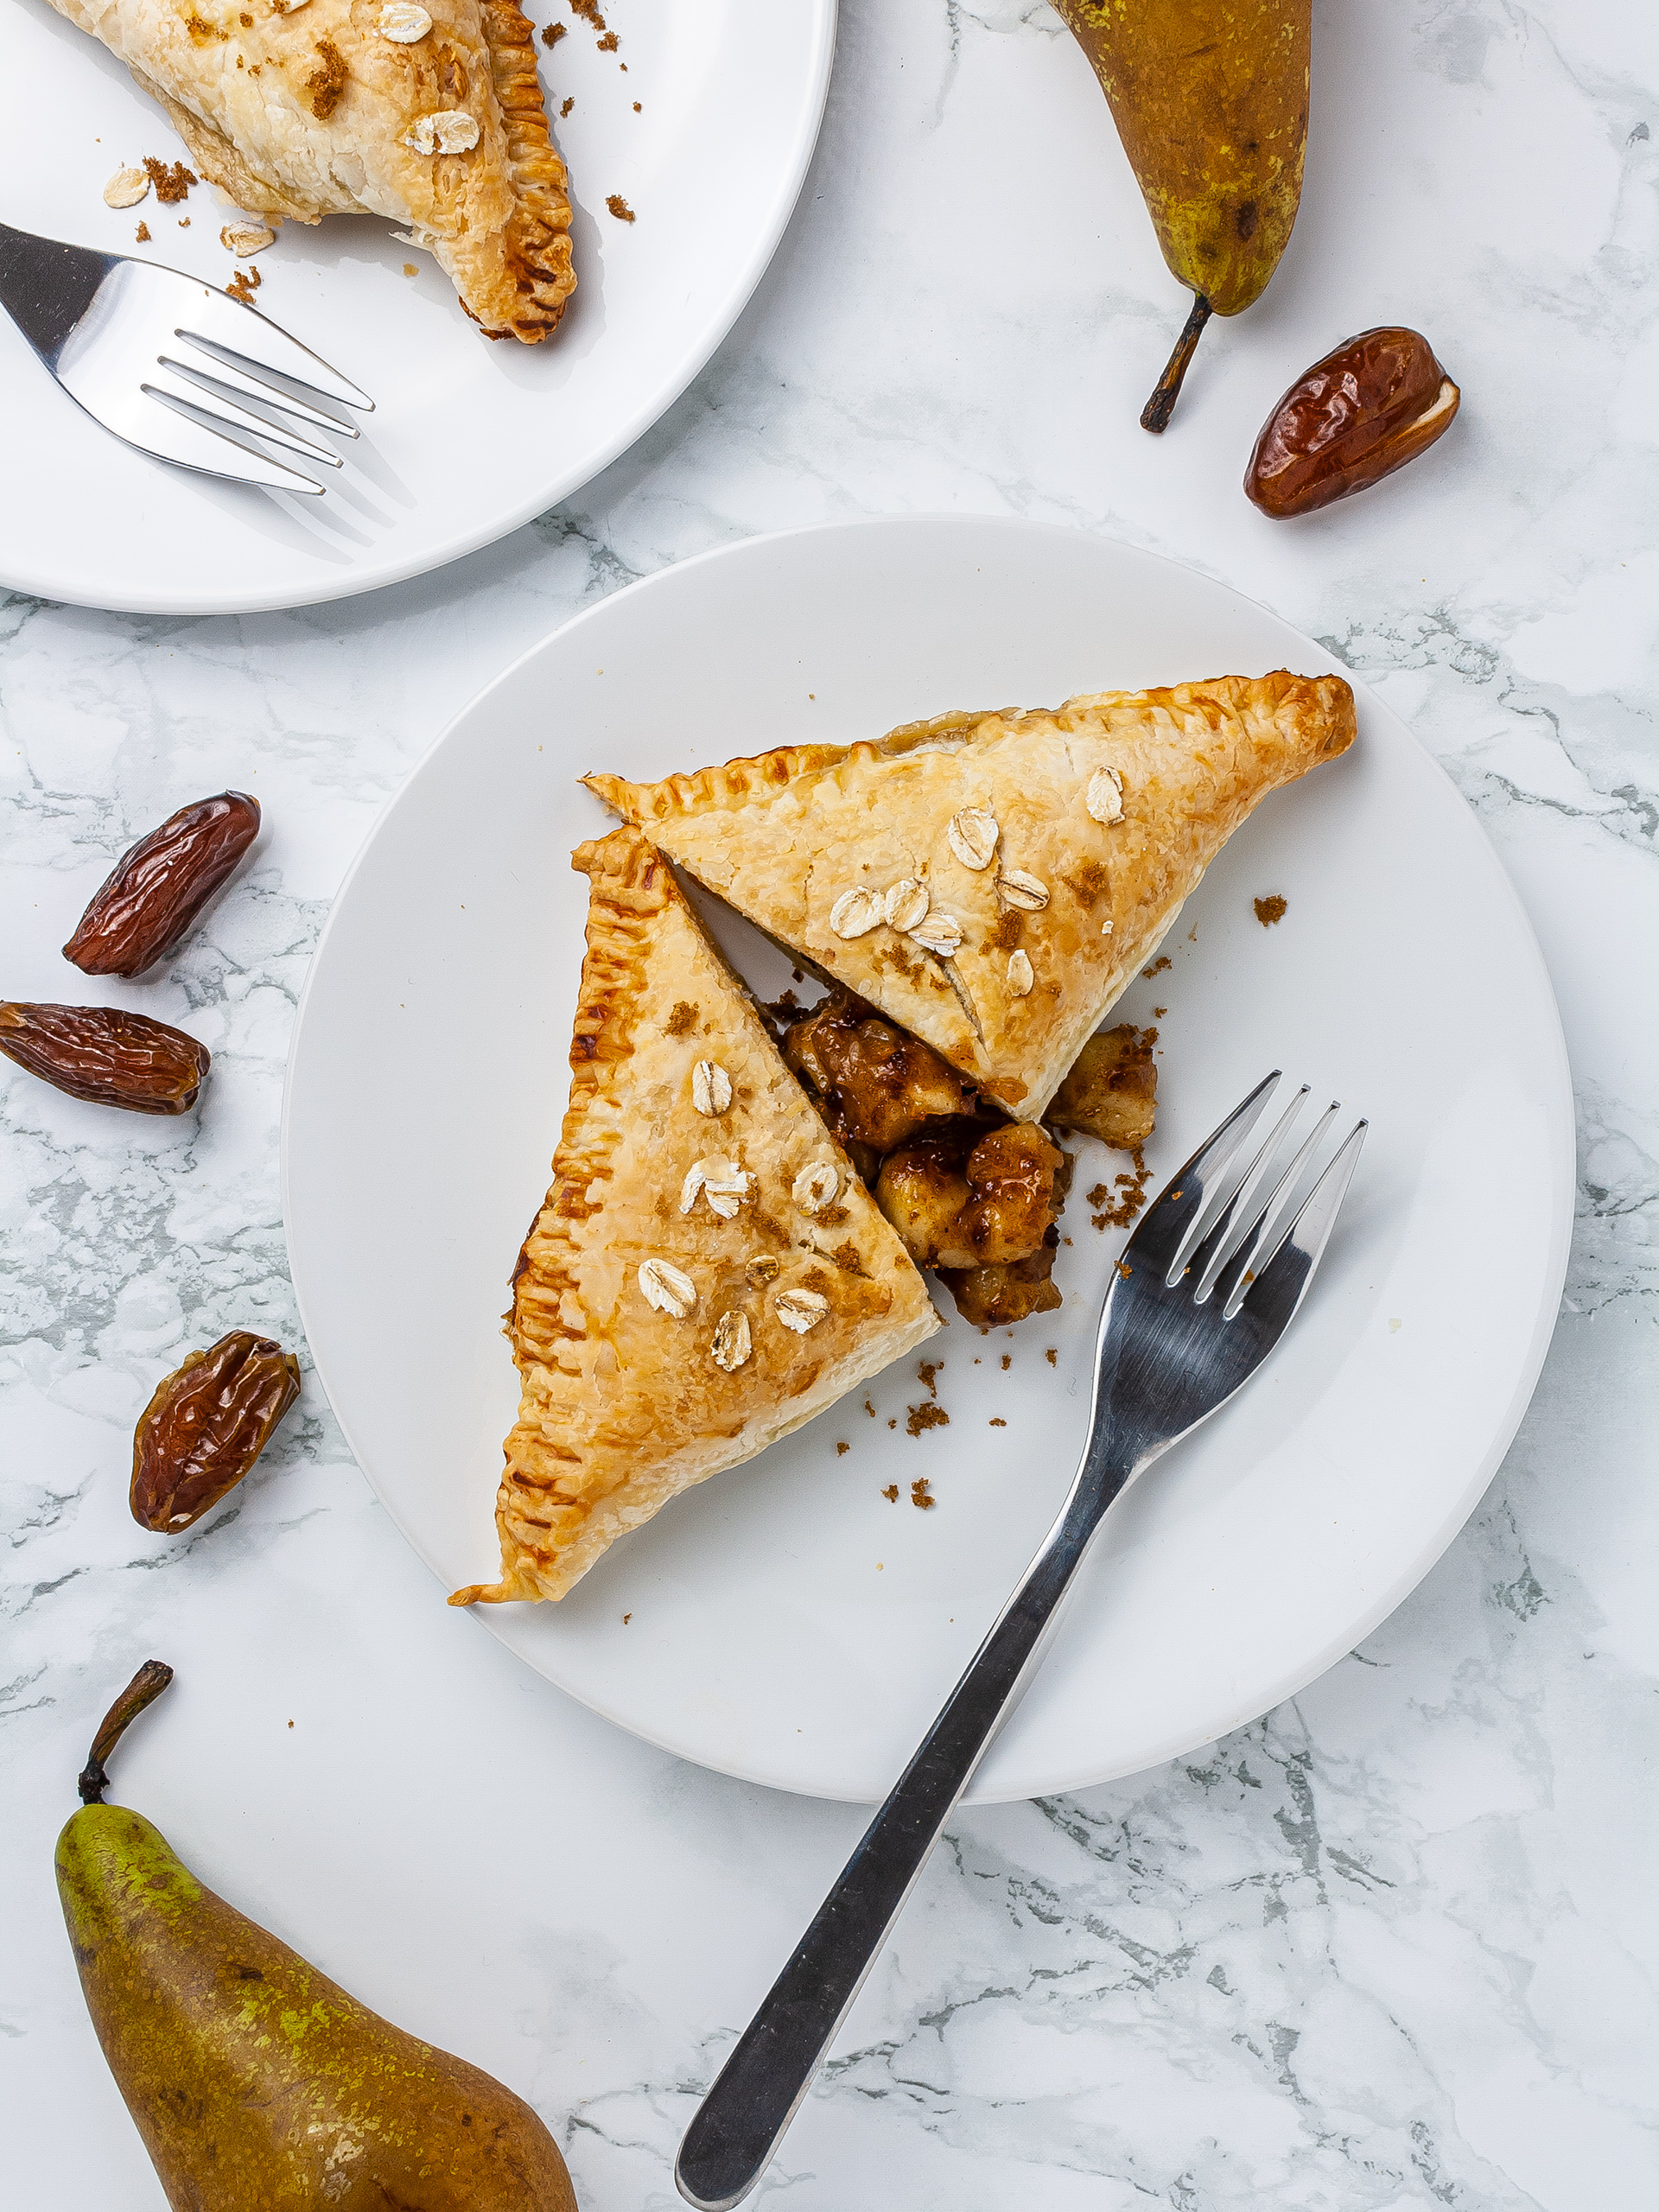 Gluten-Free Pear Turnovers with Dates Recipe